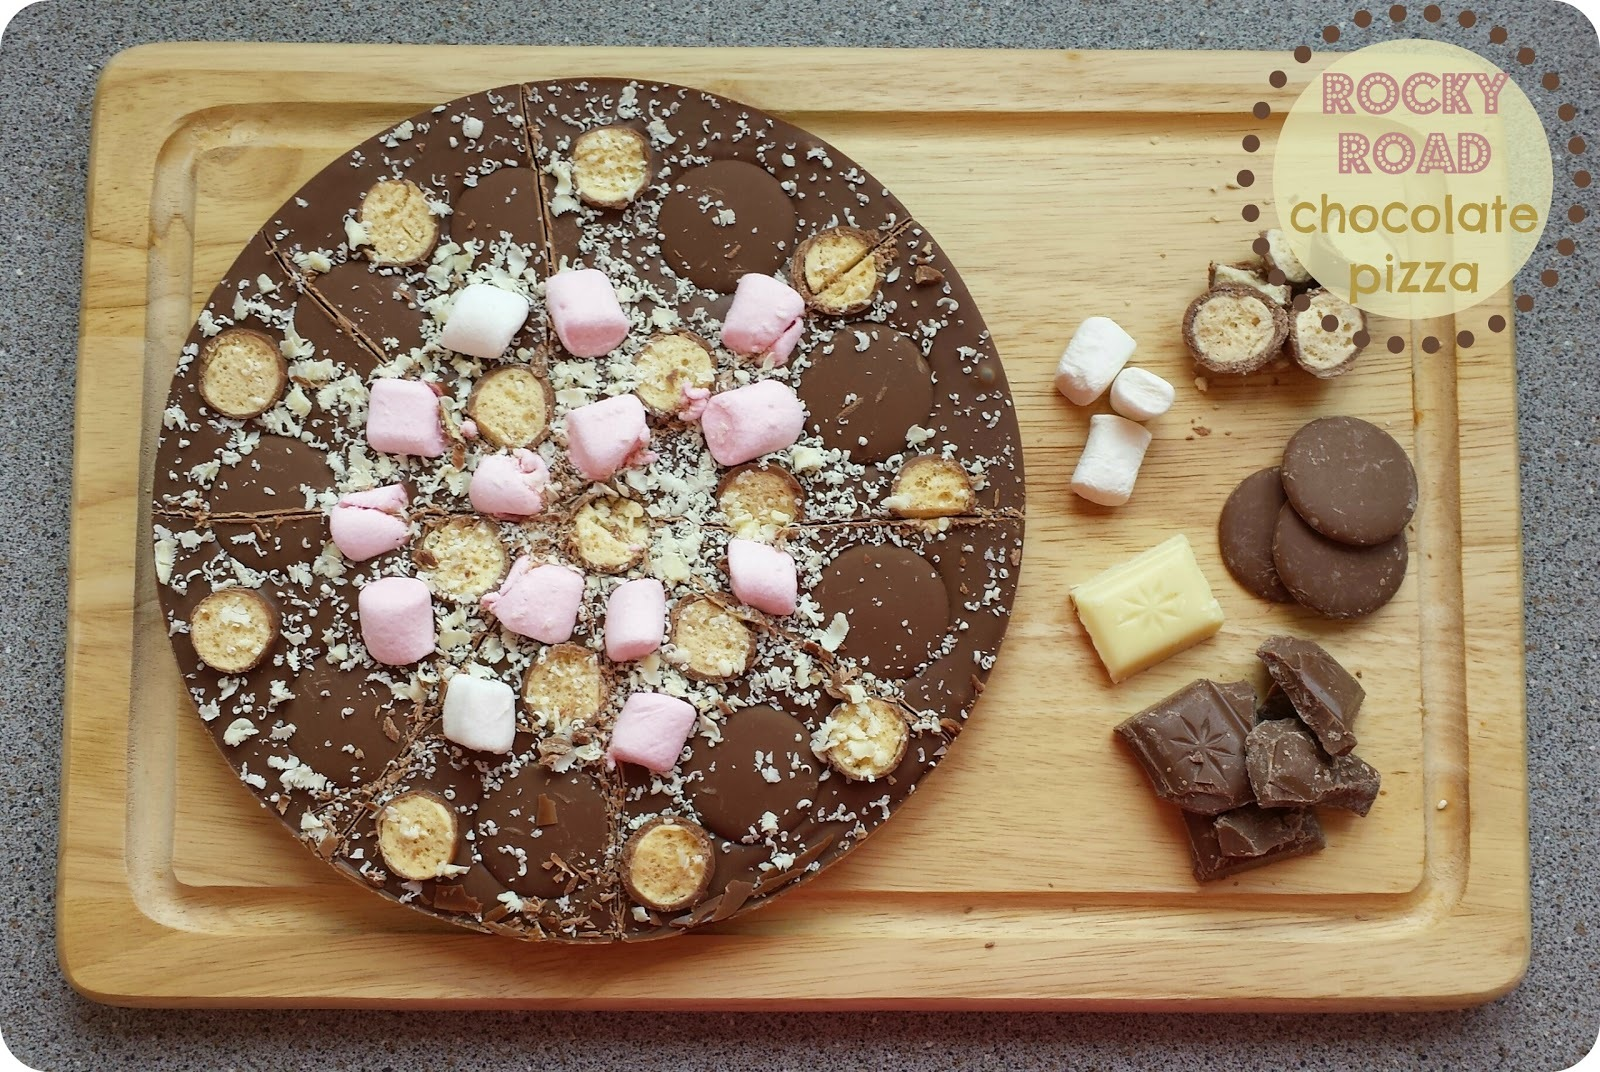 Recipe - Rocky road chocolate pizza